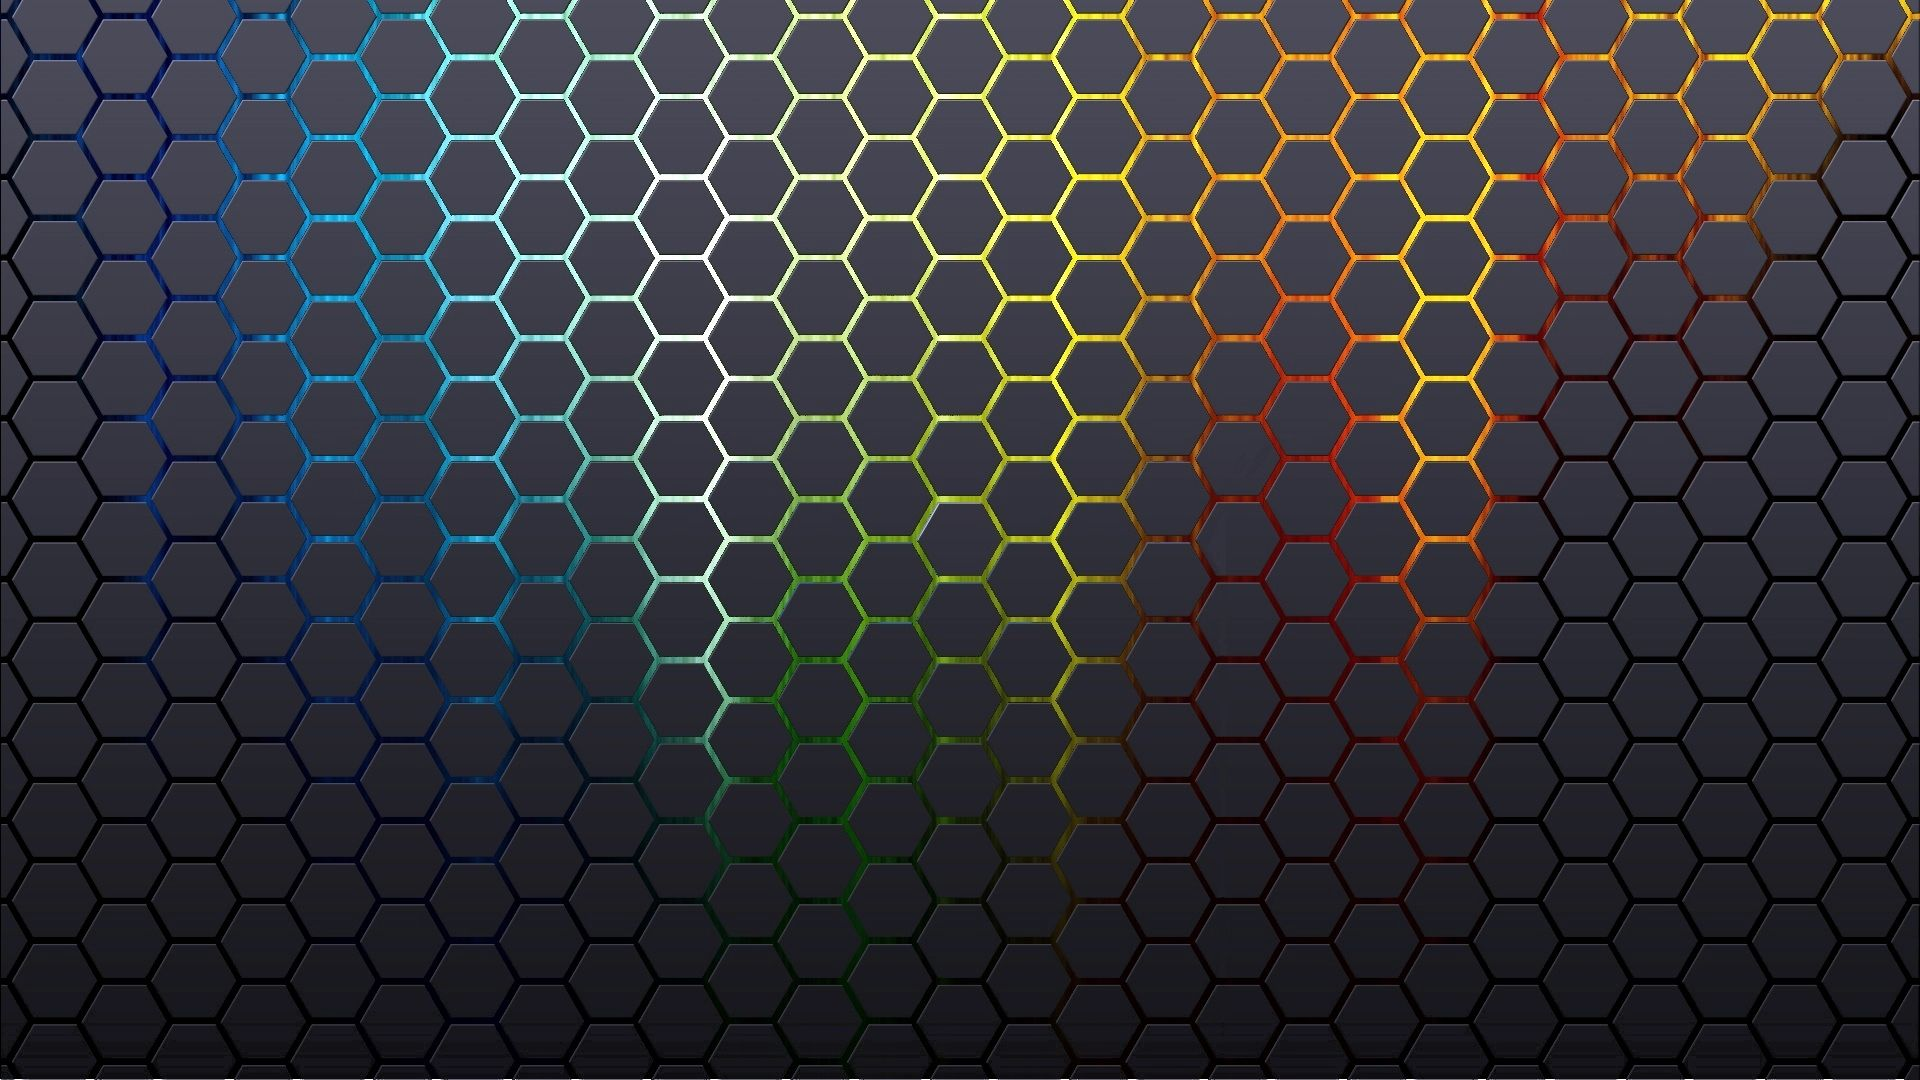 Honeycomb wallpapers background images page 6 - Abstract Backgrounds Hexagons Honeycomb Patterns Textures Free Iphone Or Android Full Hd Wallpaper